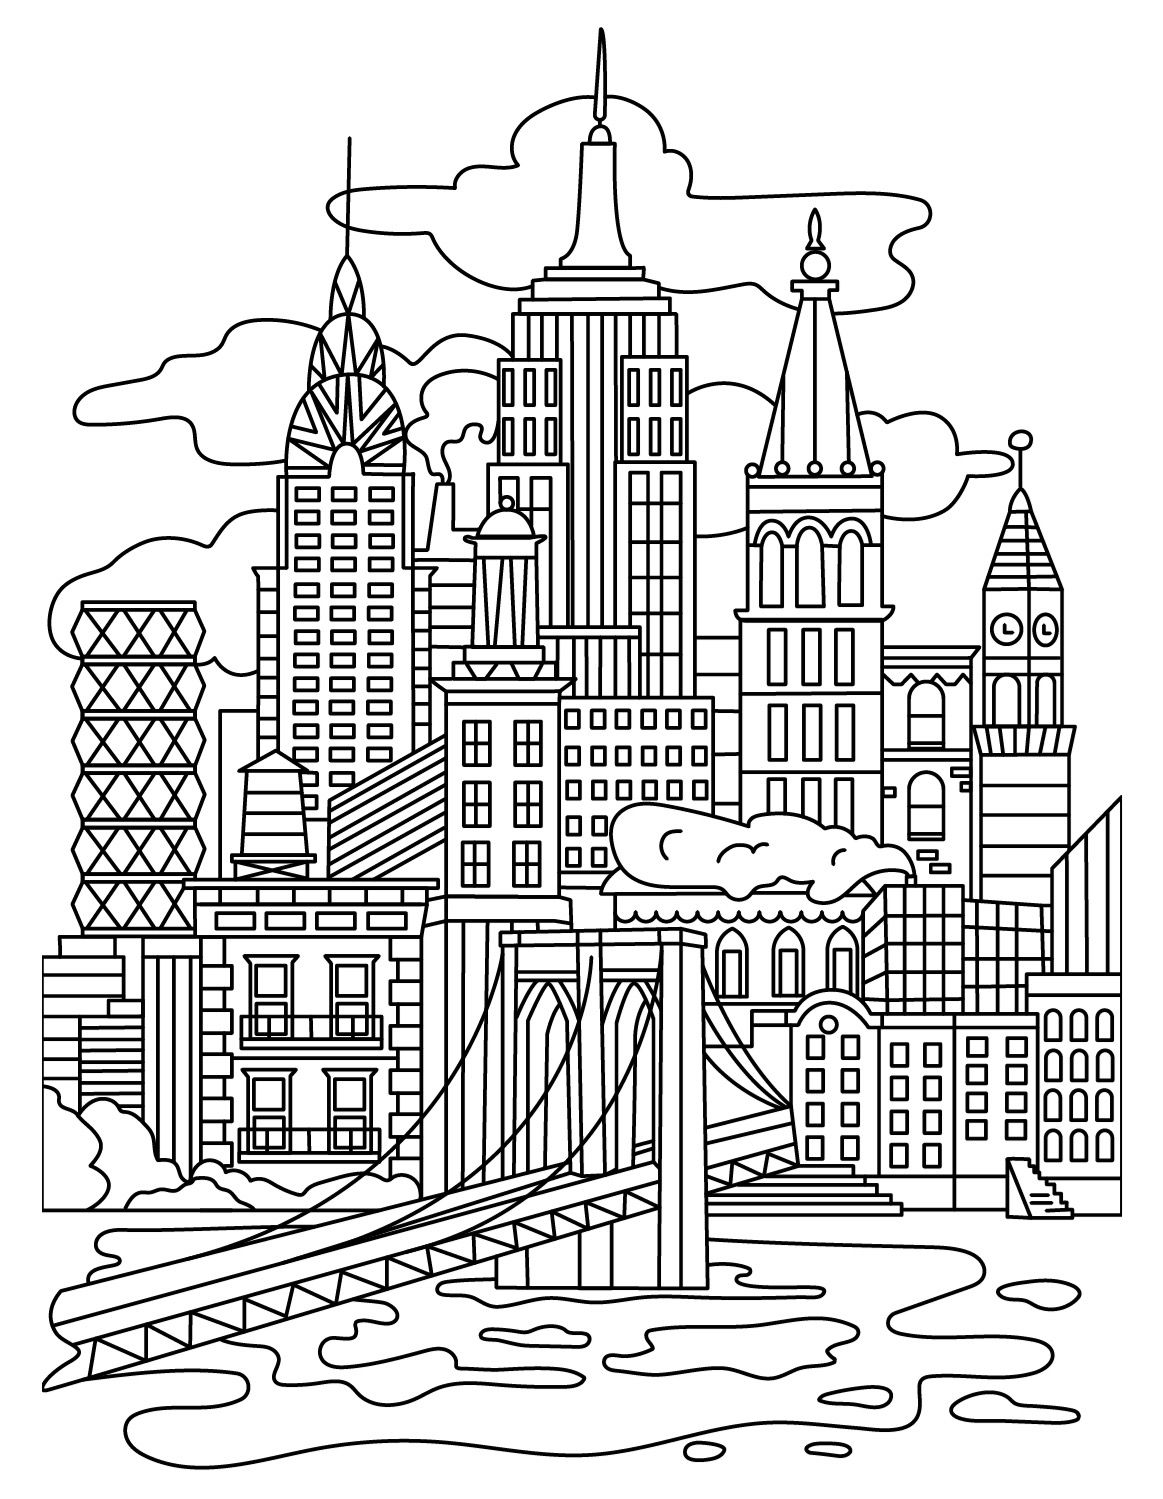 Cities Colorish Coloring Book App For Adults Mandala Relax By Goodsofttech Coloring Books Coloring Pages New York Drawing